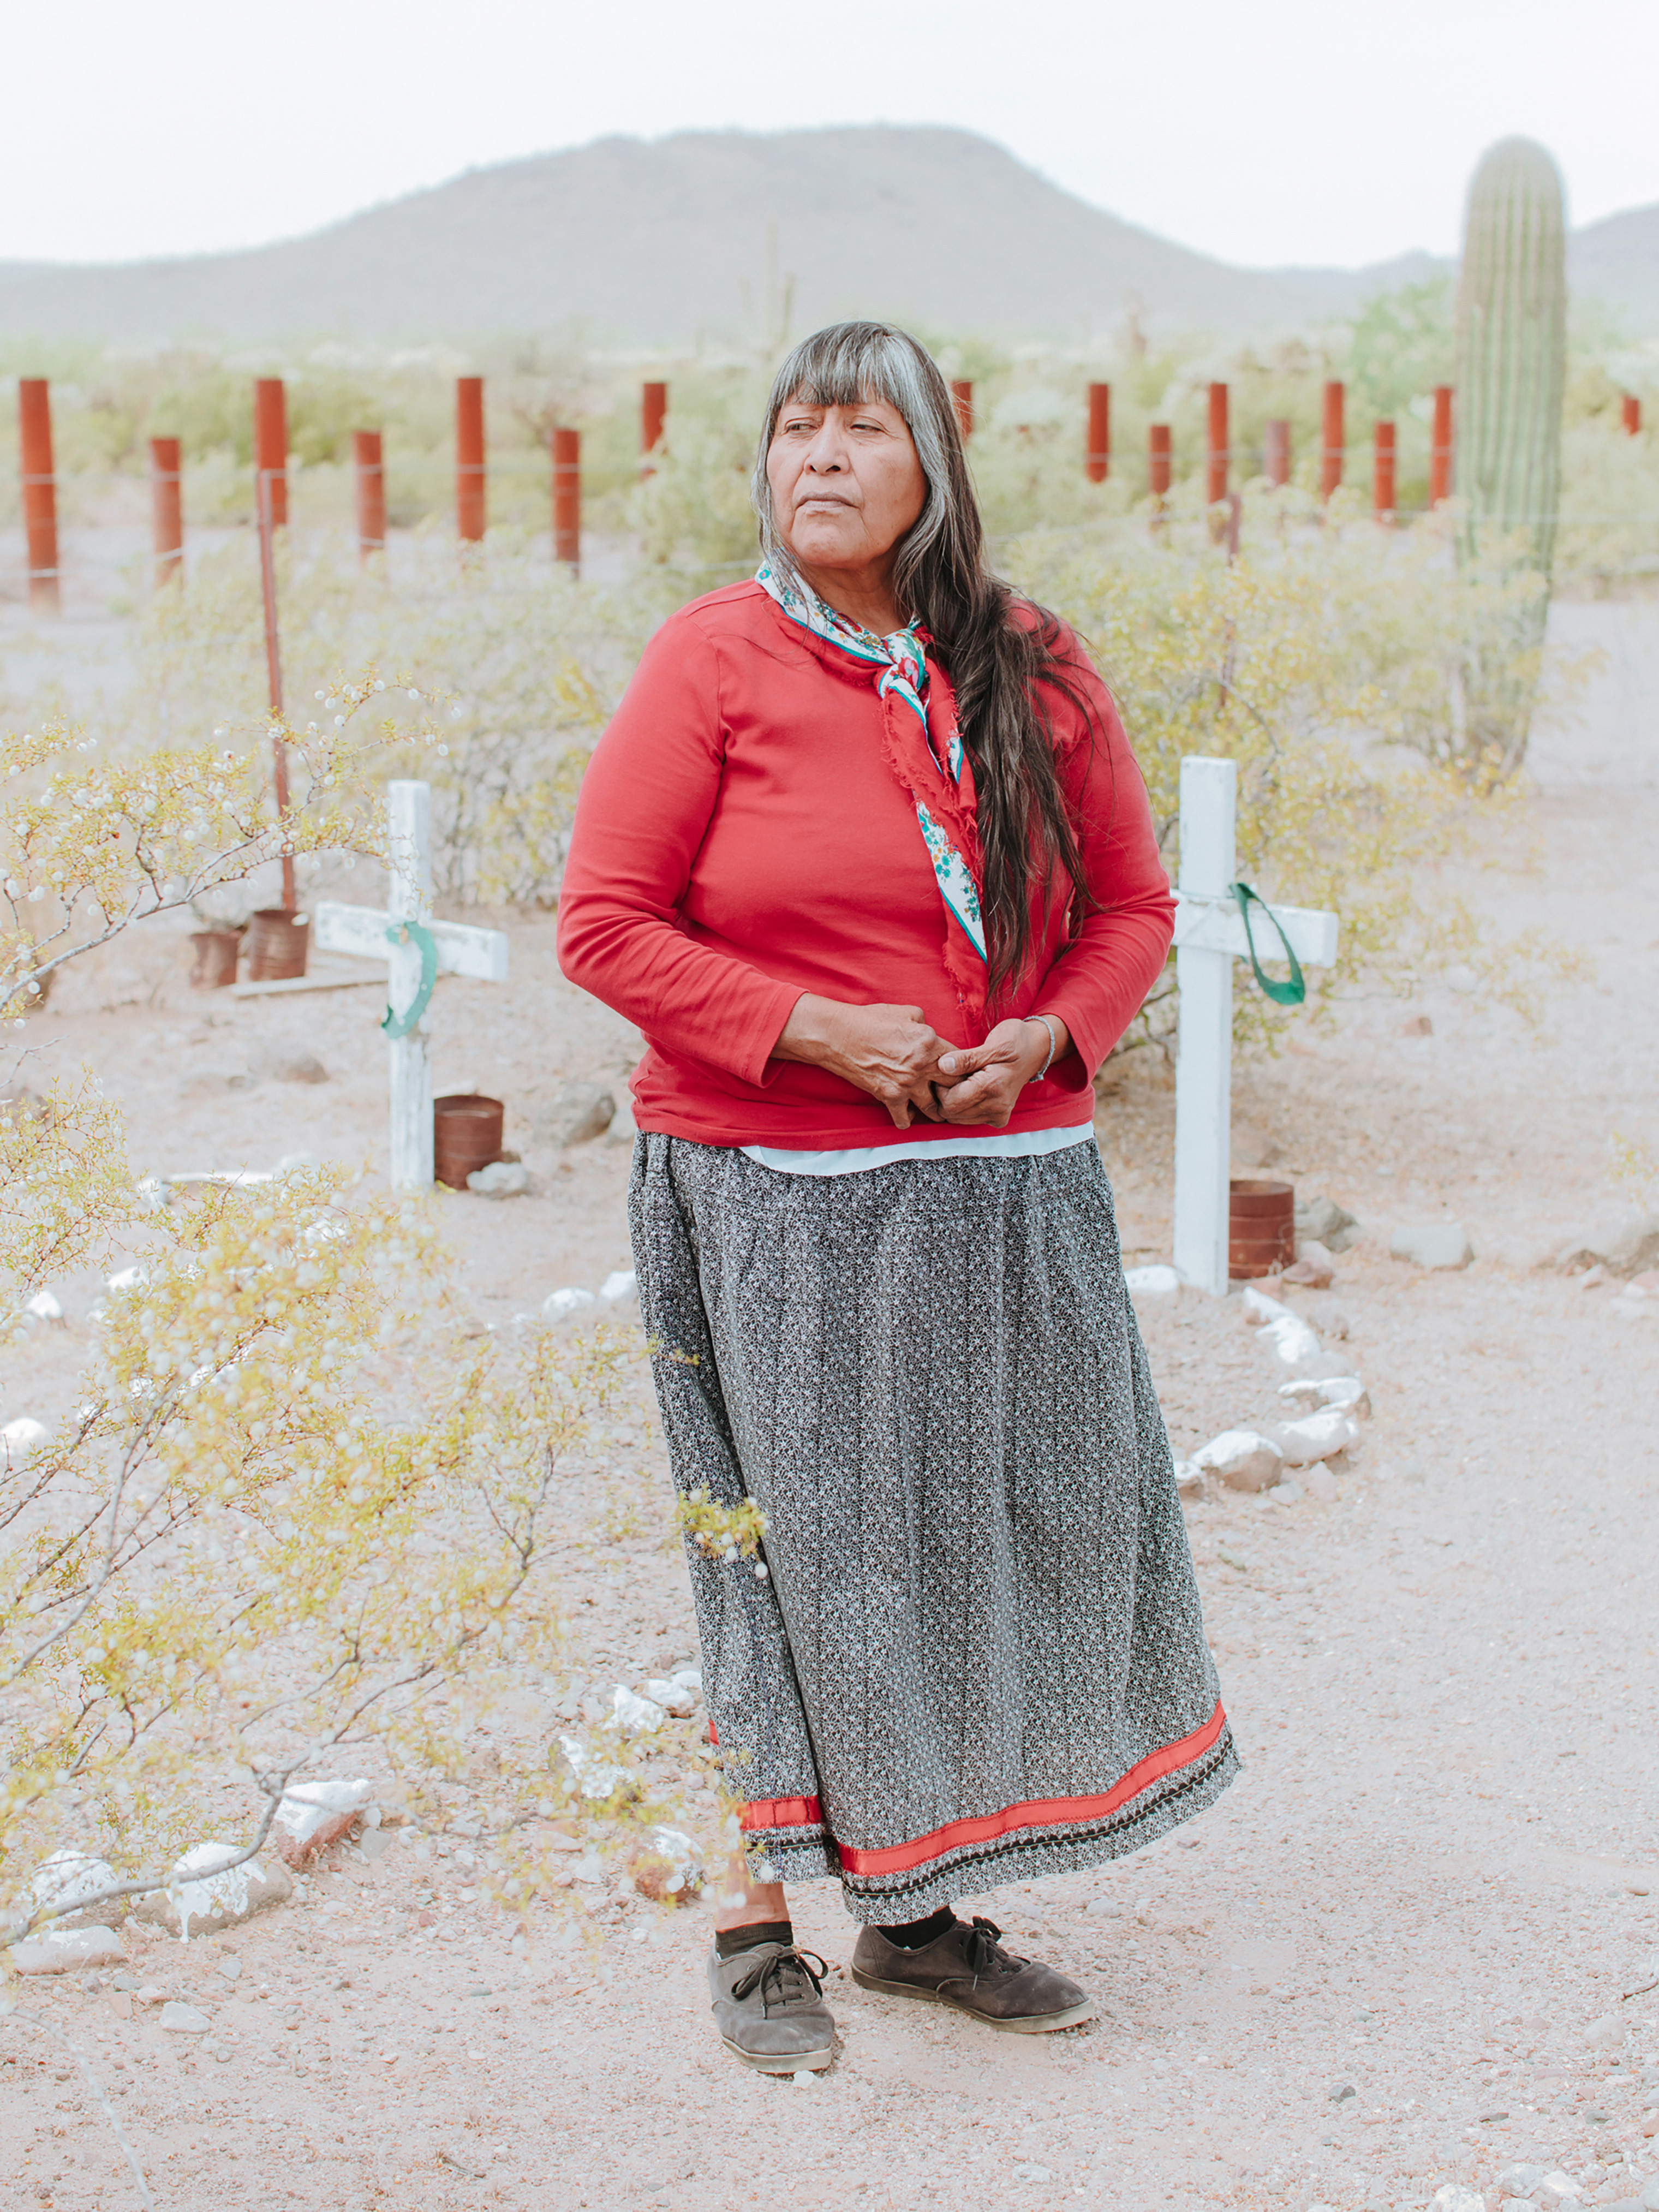 Ofelia Rivas poses in front of crosses her father made, marking the graves of two migrants who died from dehydration years before she was born in Tohono O'odham Nation, Ali Jek, Ariz.